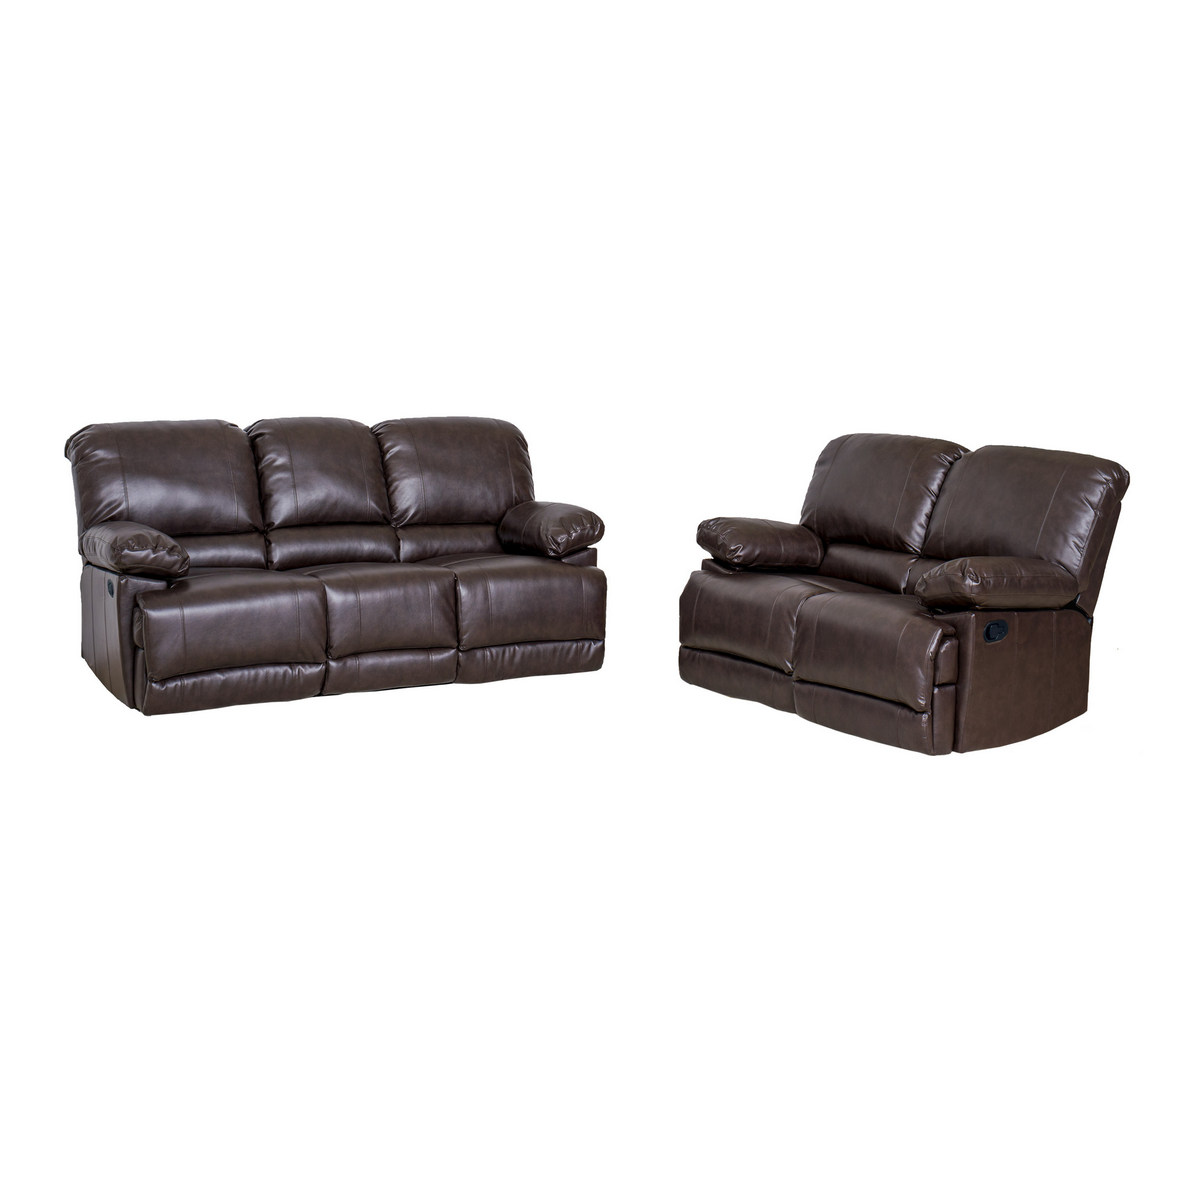 Brown Bonded Leather Reclining Sofa Set